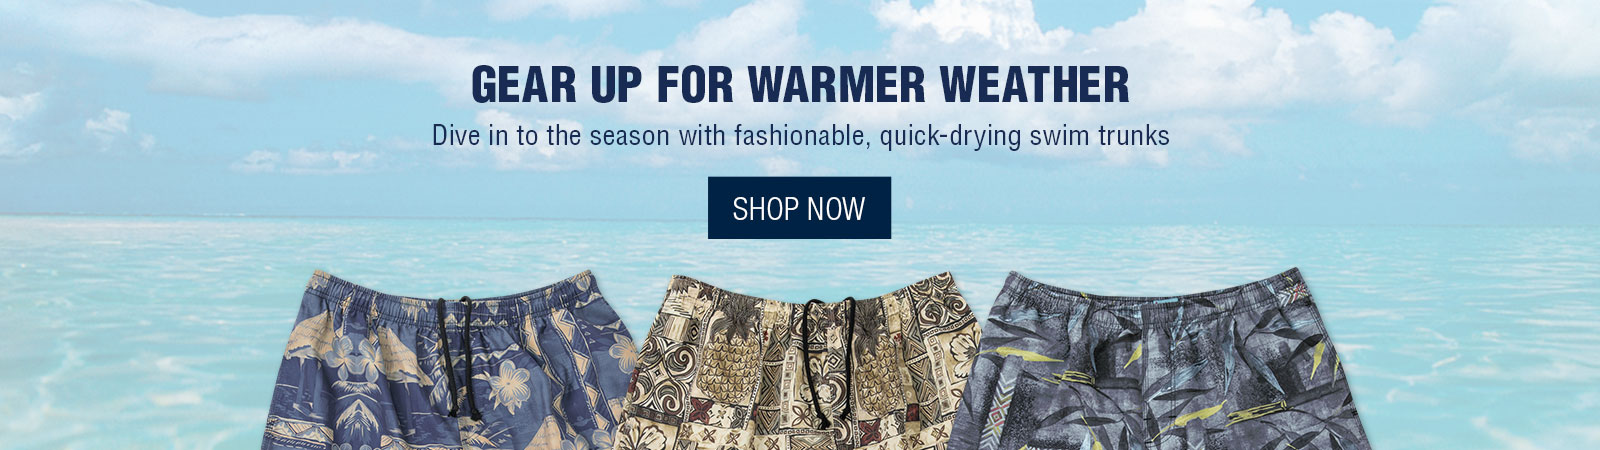 Gear up for warmer weather - Swim Shorts